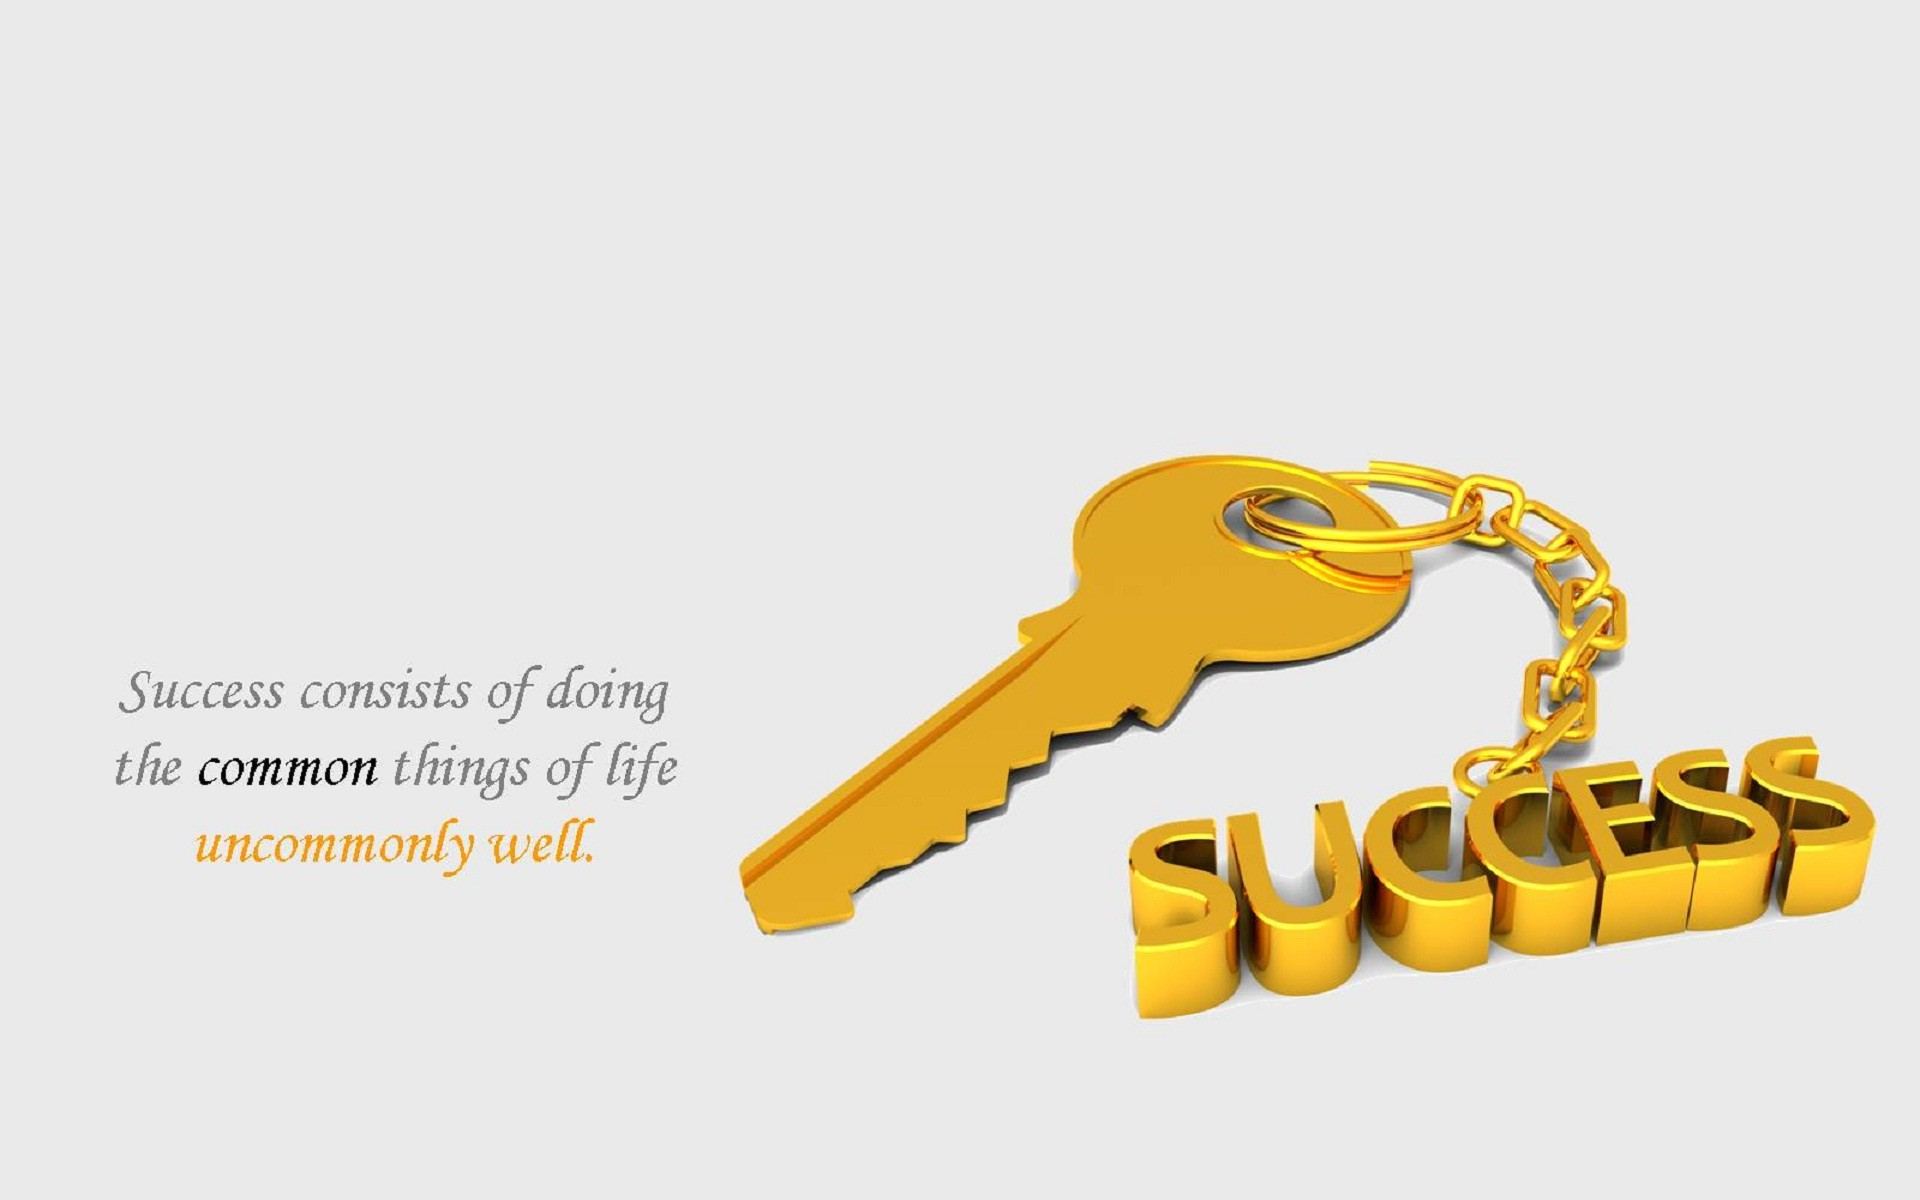 1920x1200 Success key quote latest wallpaper